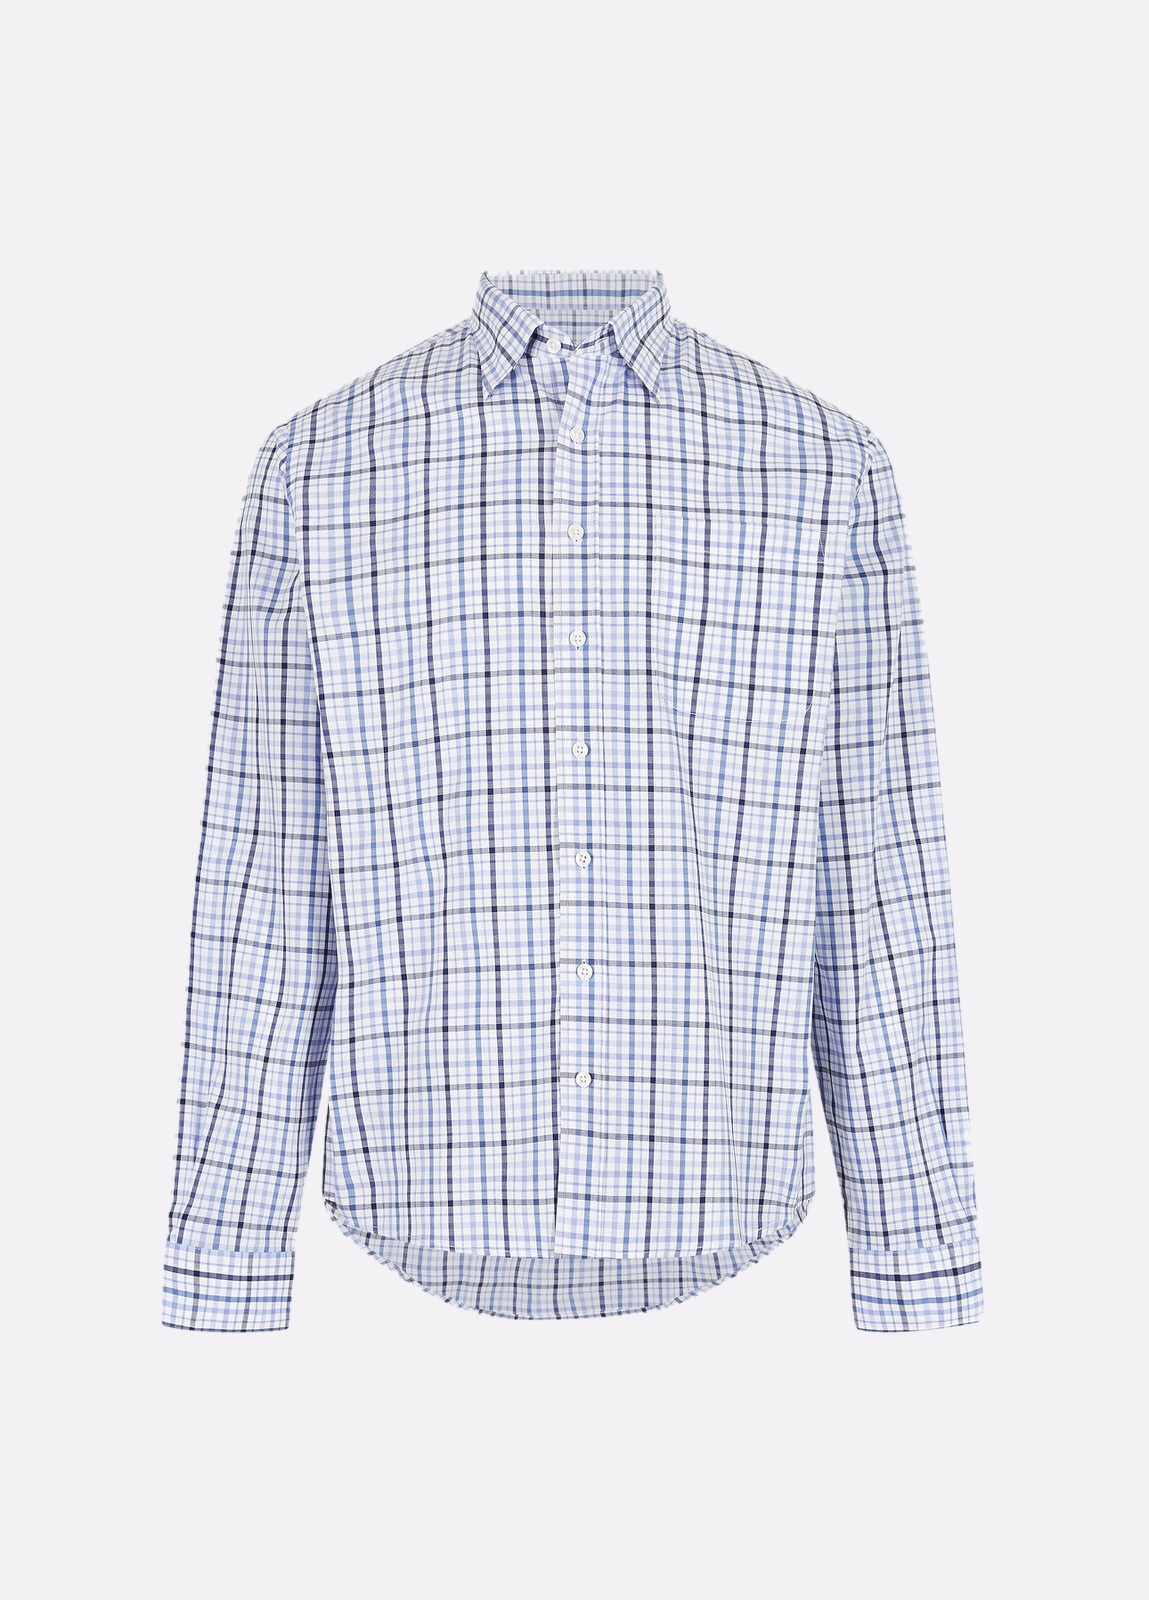 Rathdrum Check Shirt - Blue